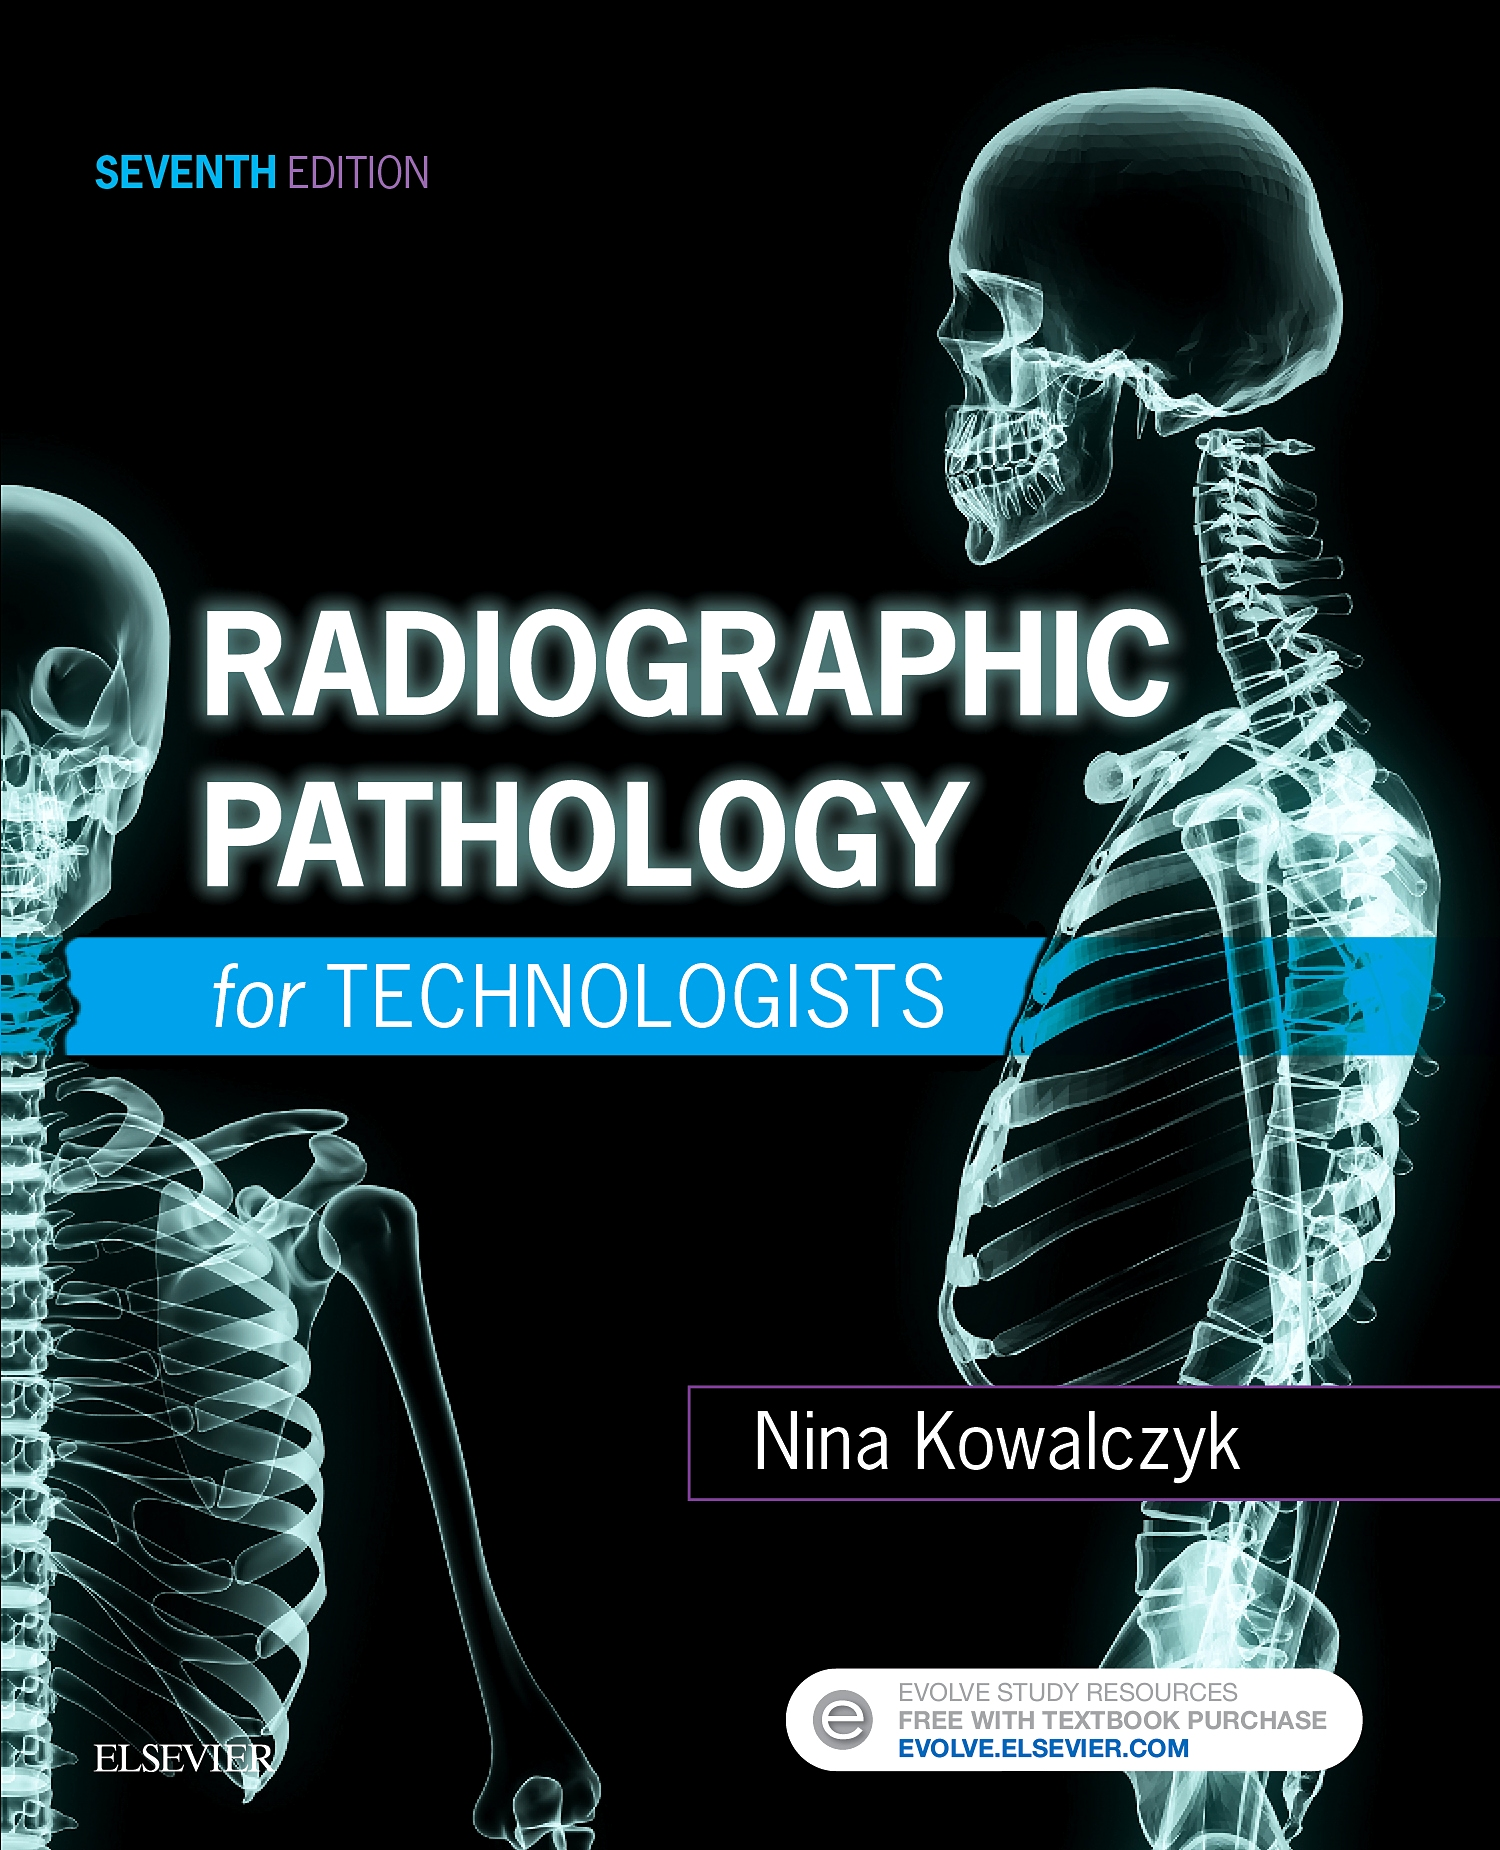 Evolve Resources for Radiographic Pathology for Technologists, 7th Edition